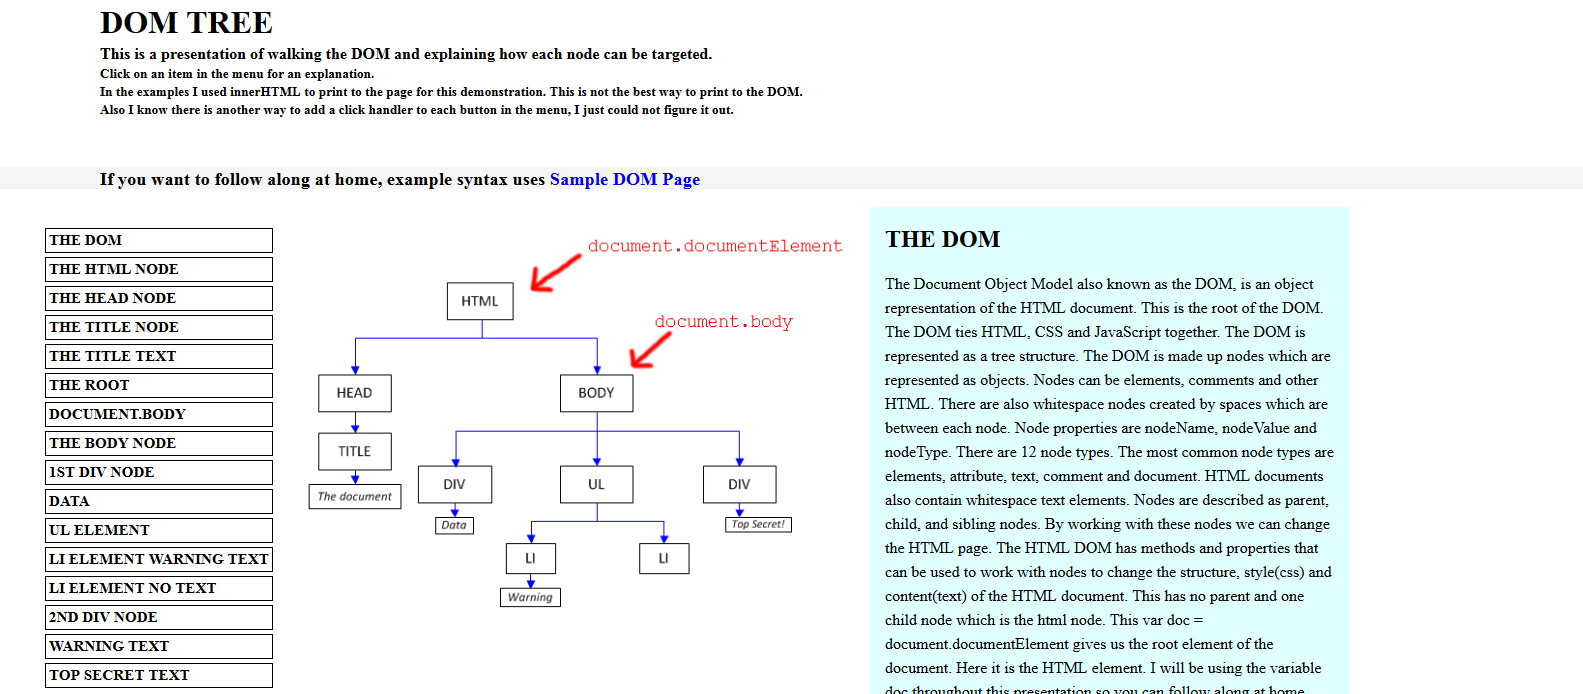 The Dom Document Object Model